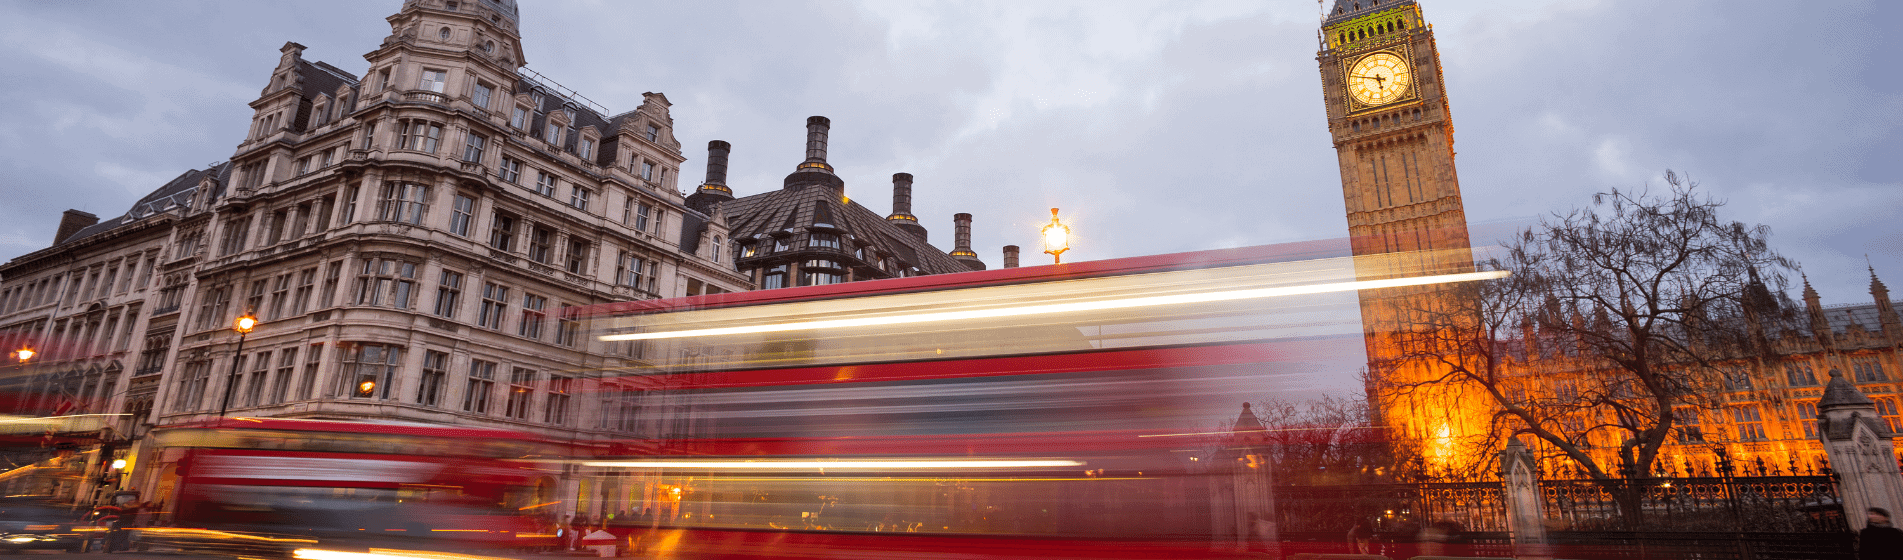 The UK Tier 1 Visa: 3 Ways to Get Residence in the UK